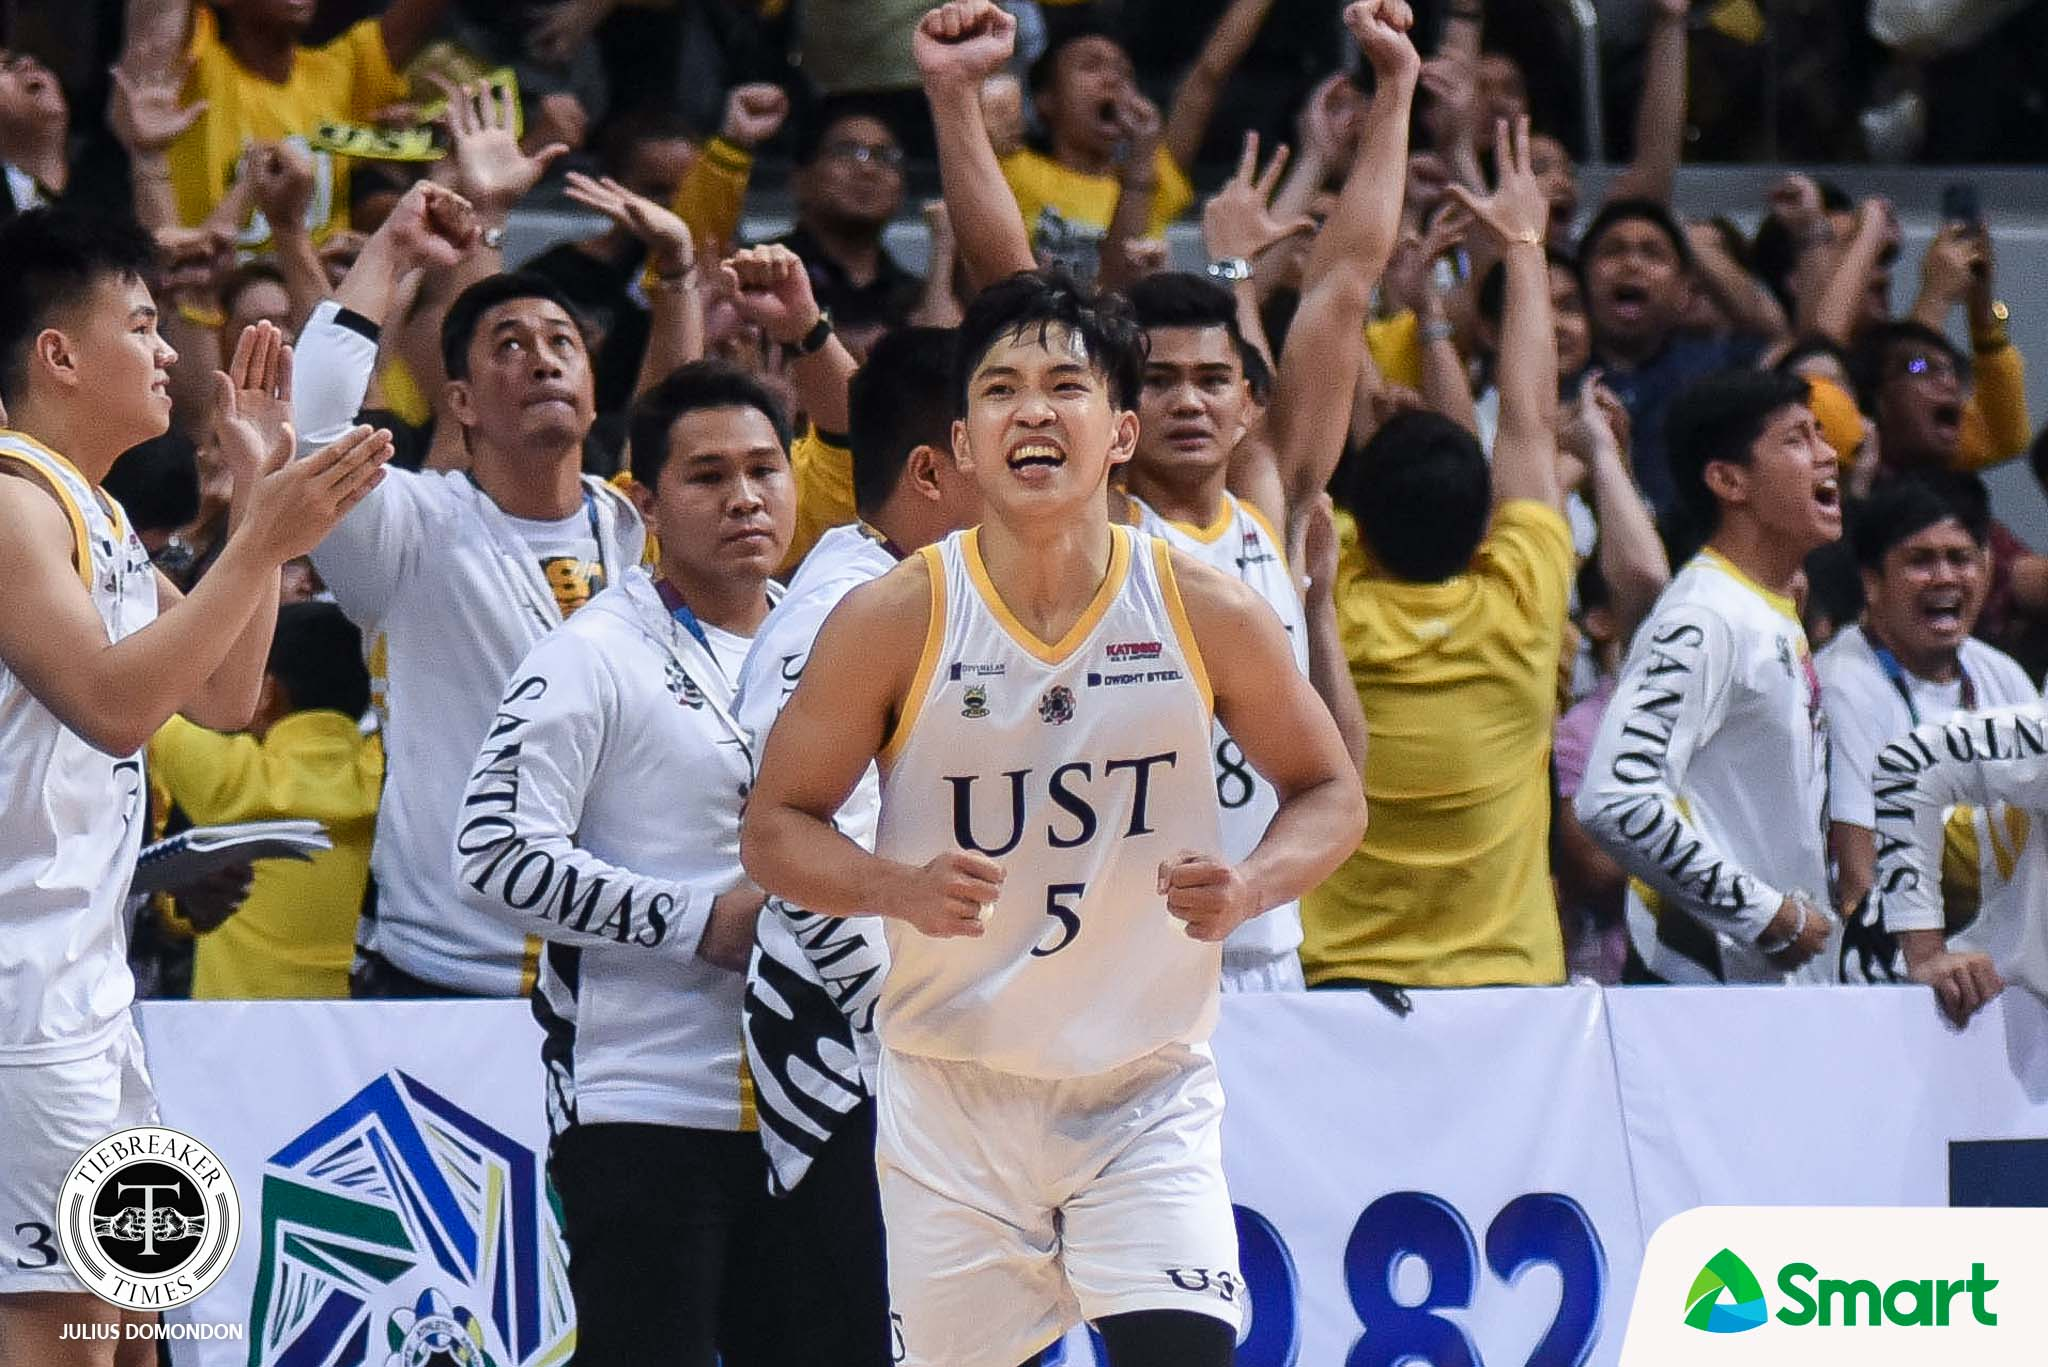 Tiebreaker Times Renzo Subido's personal sacrifice ended up worth it for UST Basketball News UAAP UST  UST Men's Basketball UAAP Season 82 Men's Basketball UAAP Season 82 Renzo Subido